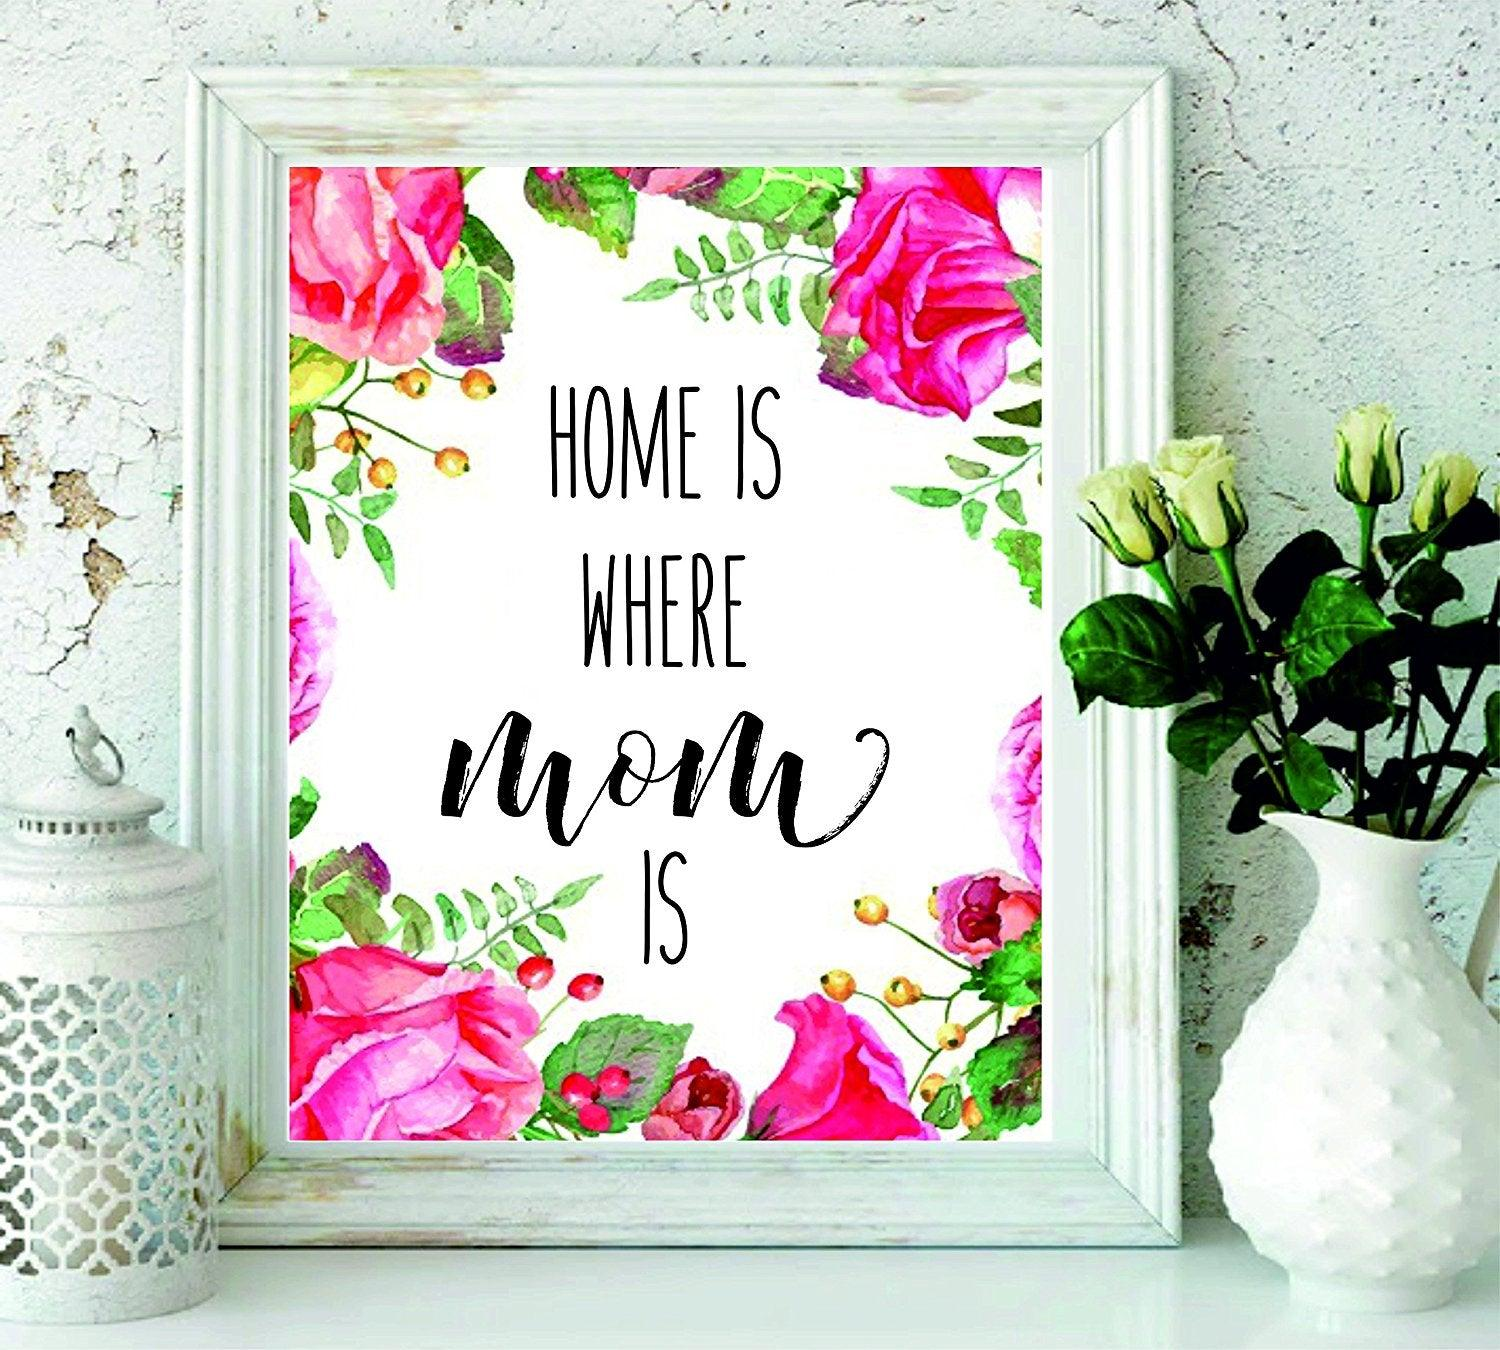 Christmas Presents For Mom From Daughter.Home Is Where Mom Is Christmas Gift For Mom Mother S Day